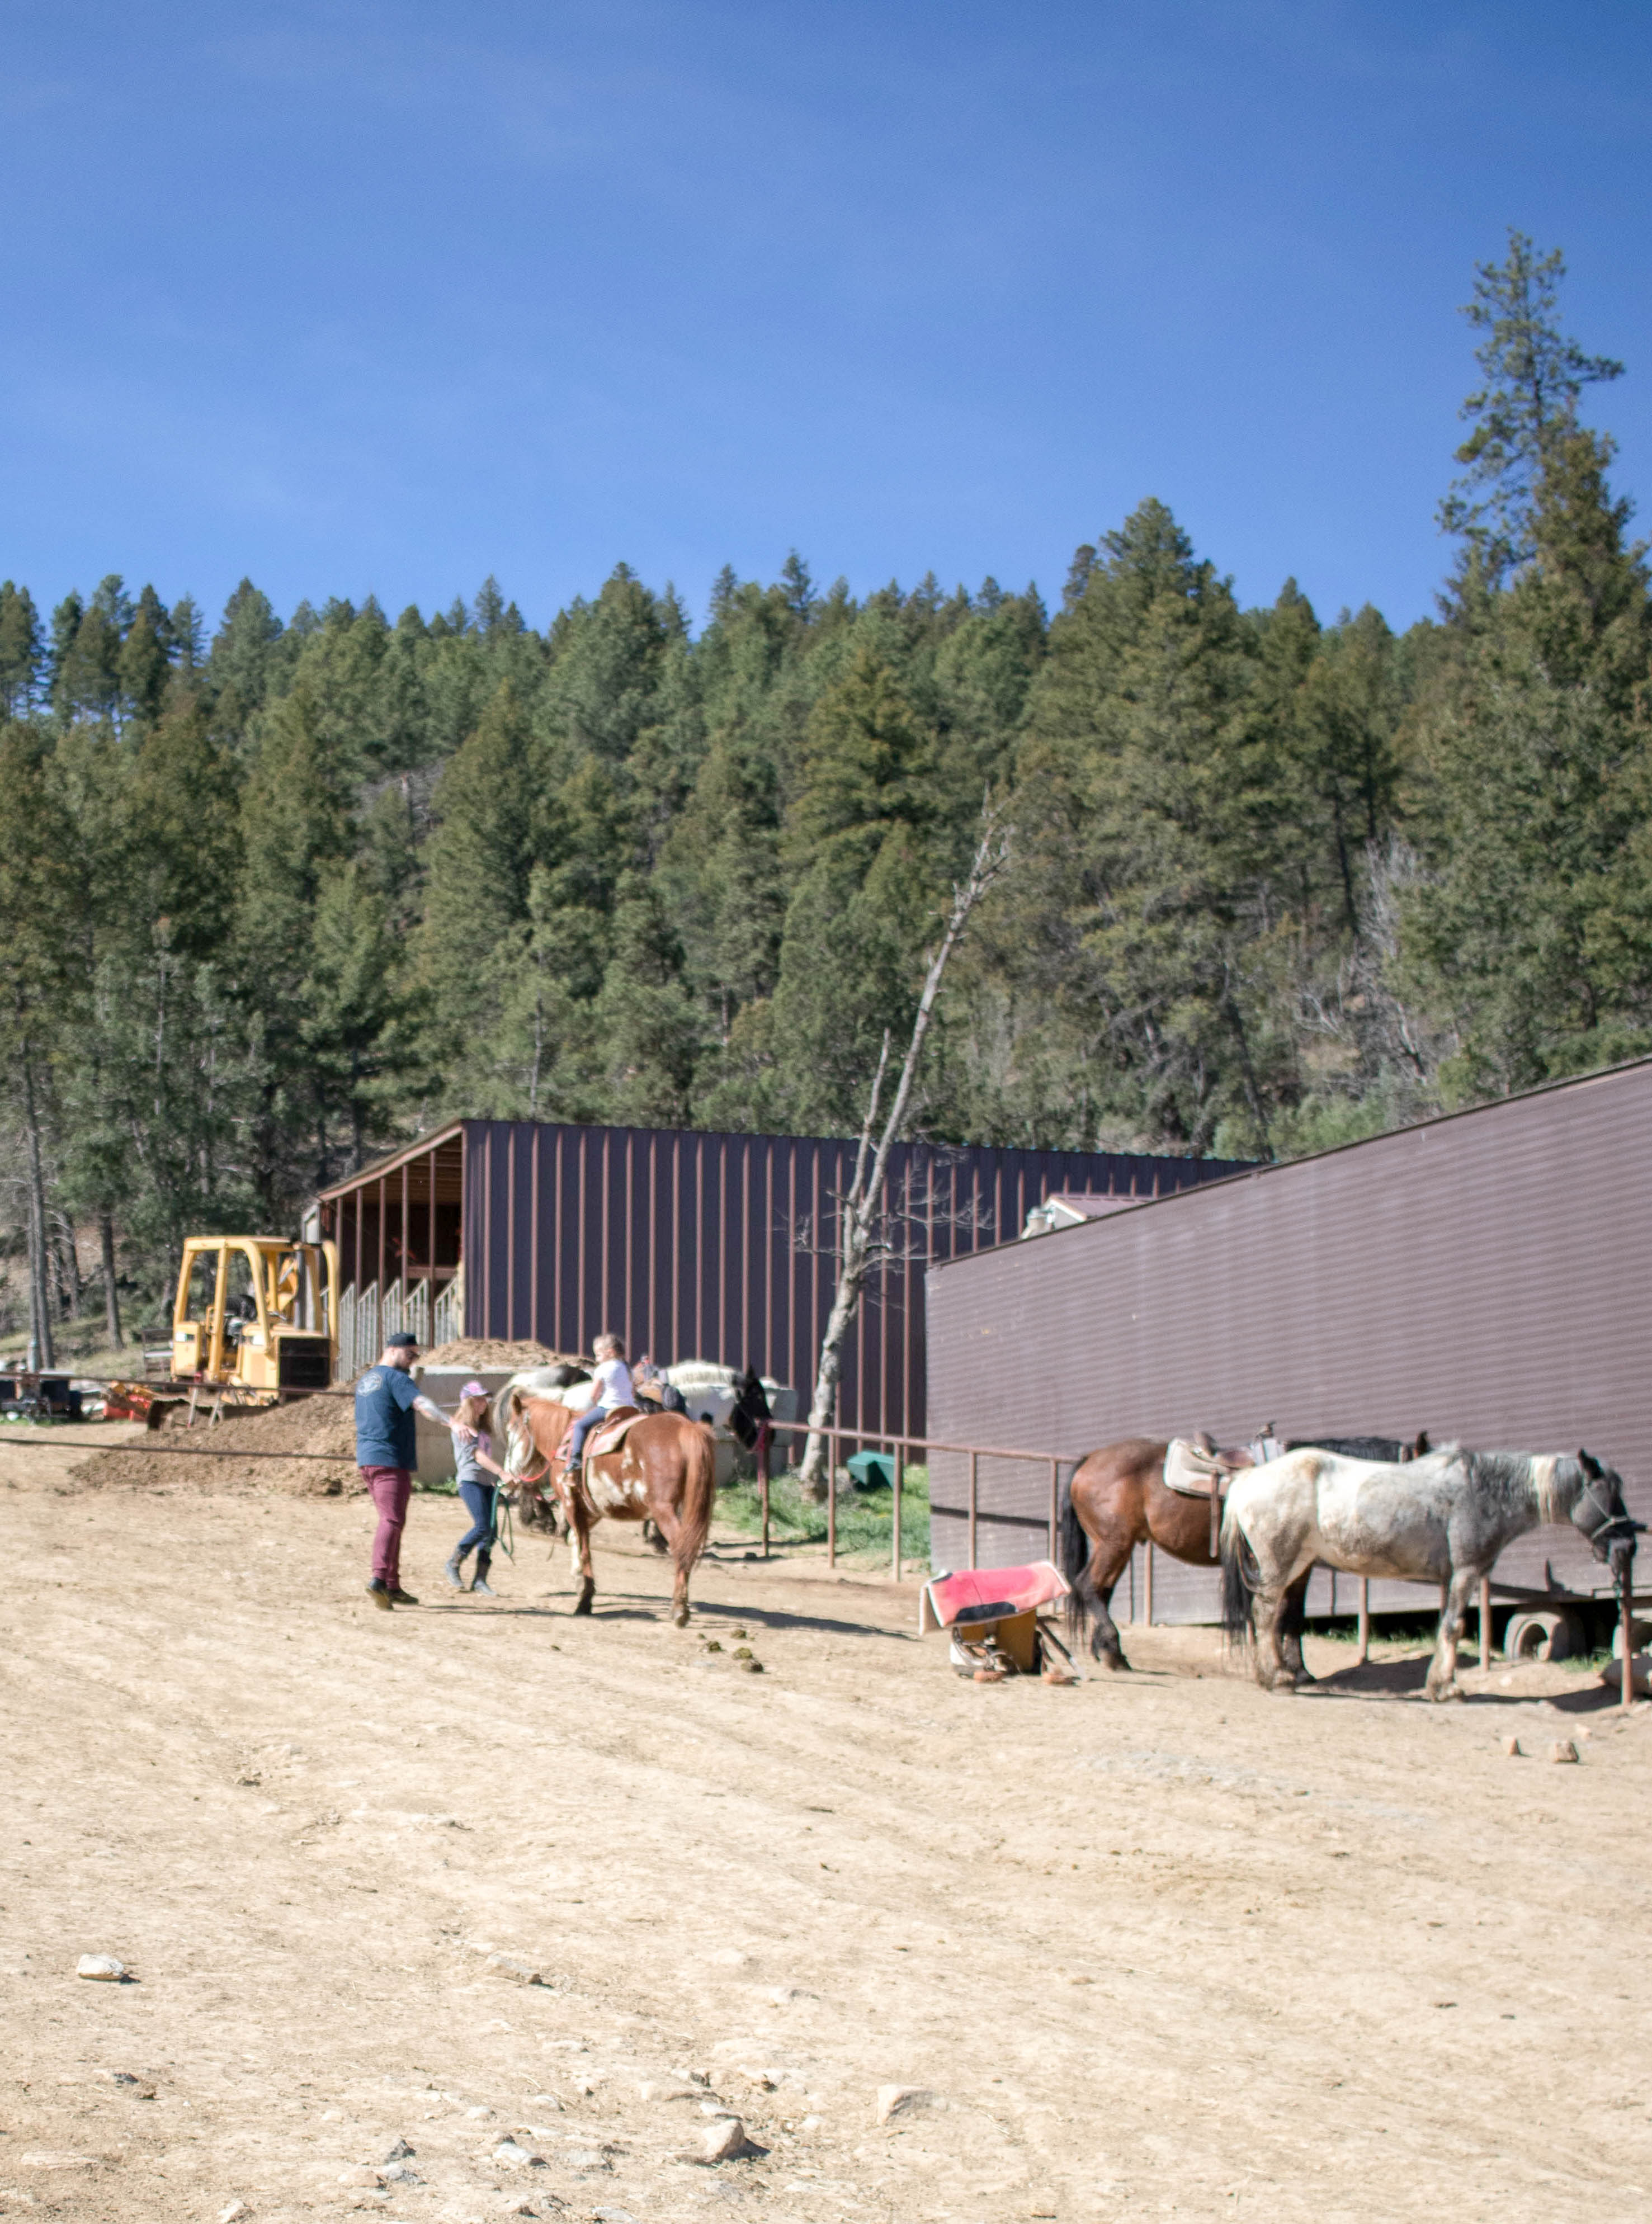 pony ride at grindstone stables #stables #ponyride #ruidoso